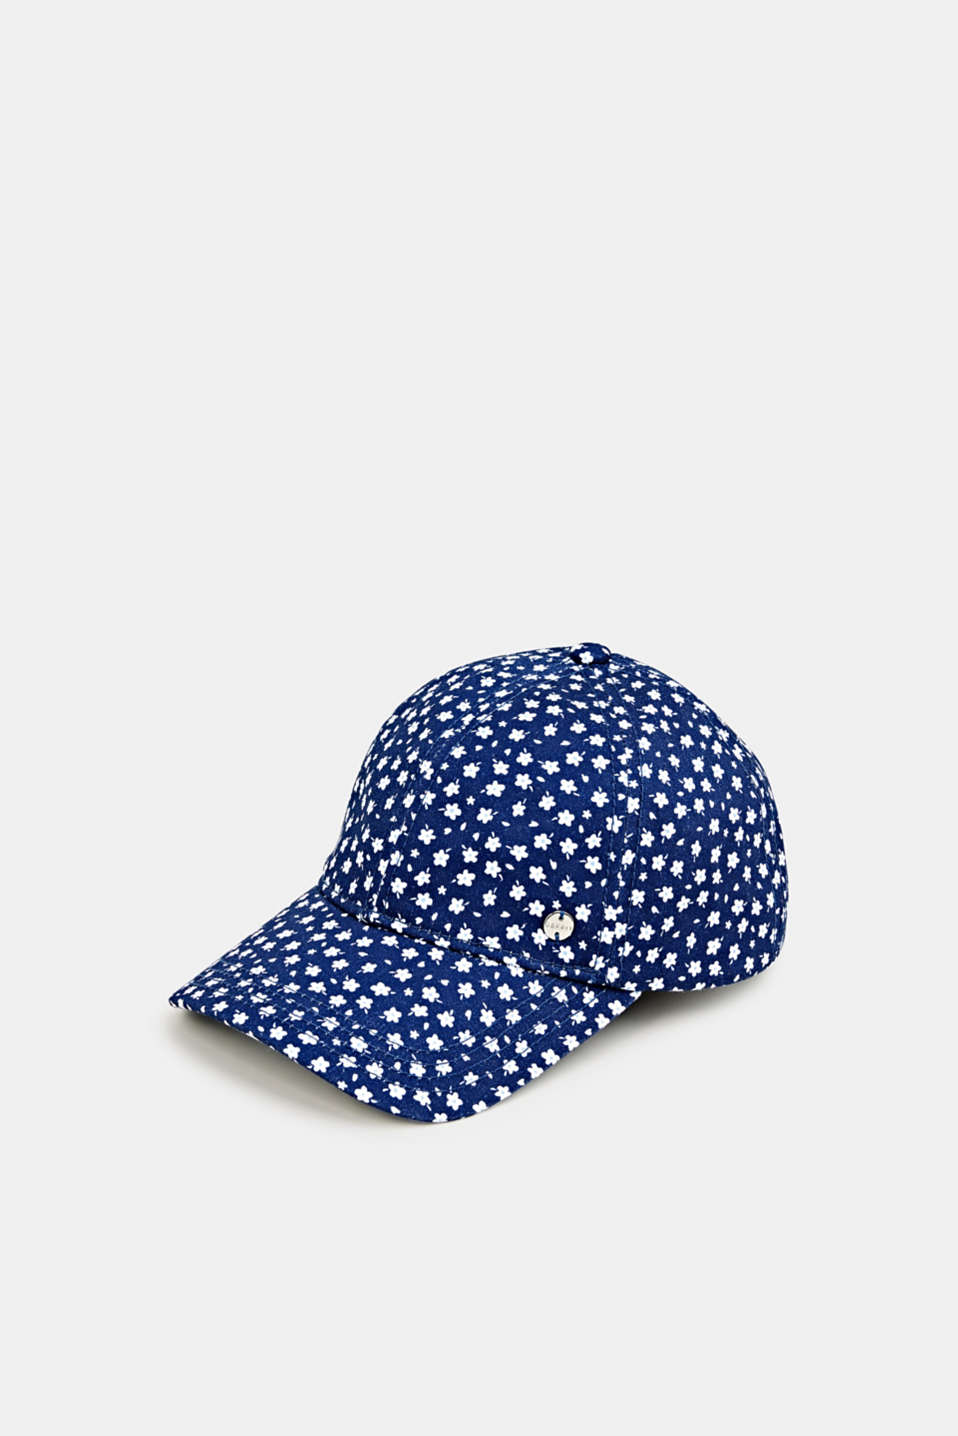 Cap with a floral print, 100% cotton, NAVY, detail image number 0